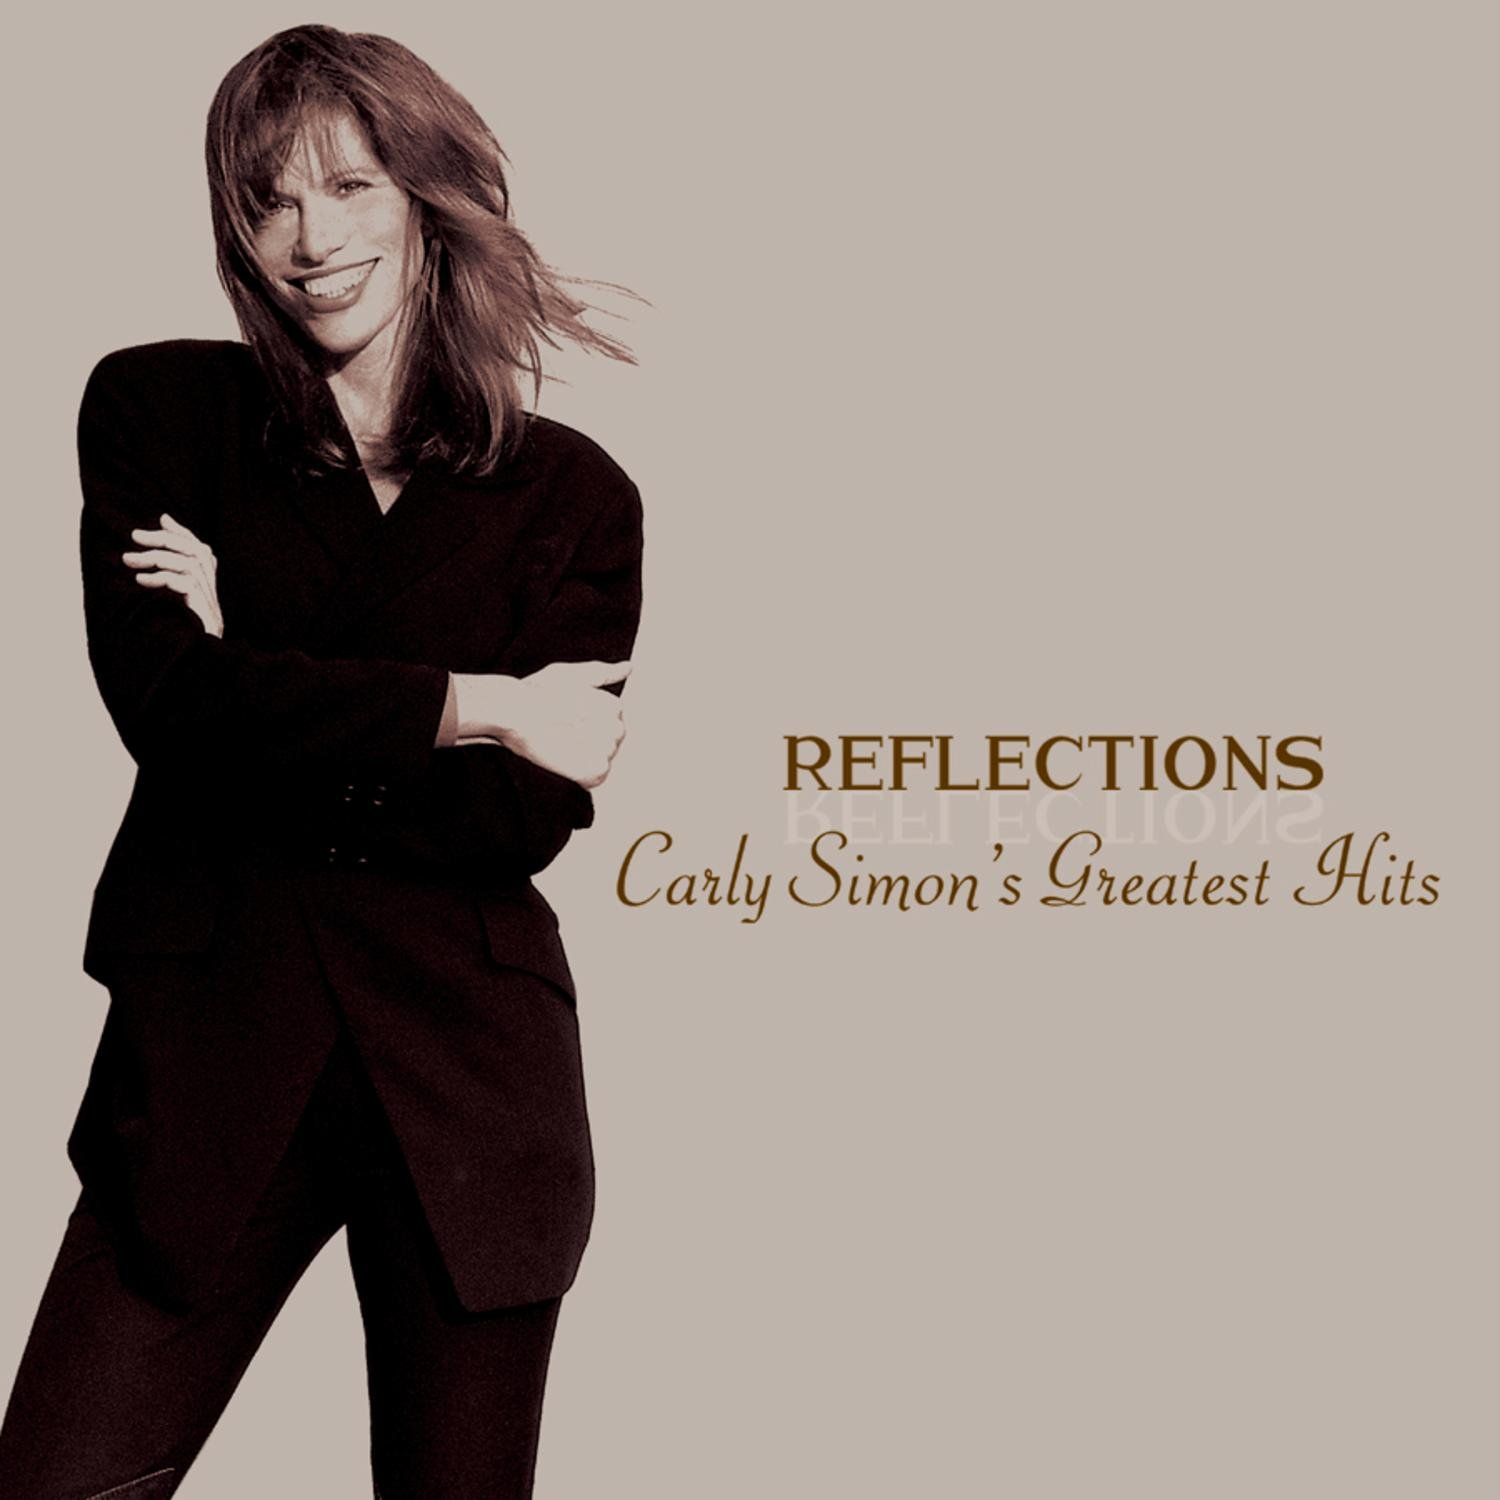 CD : Carly Simon - Reflections: Carly Simon's Greatest Hits (Remastered)